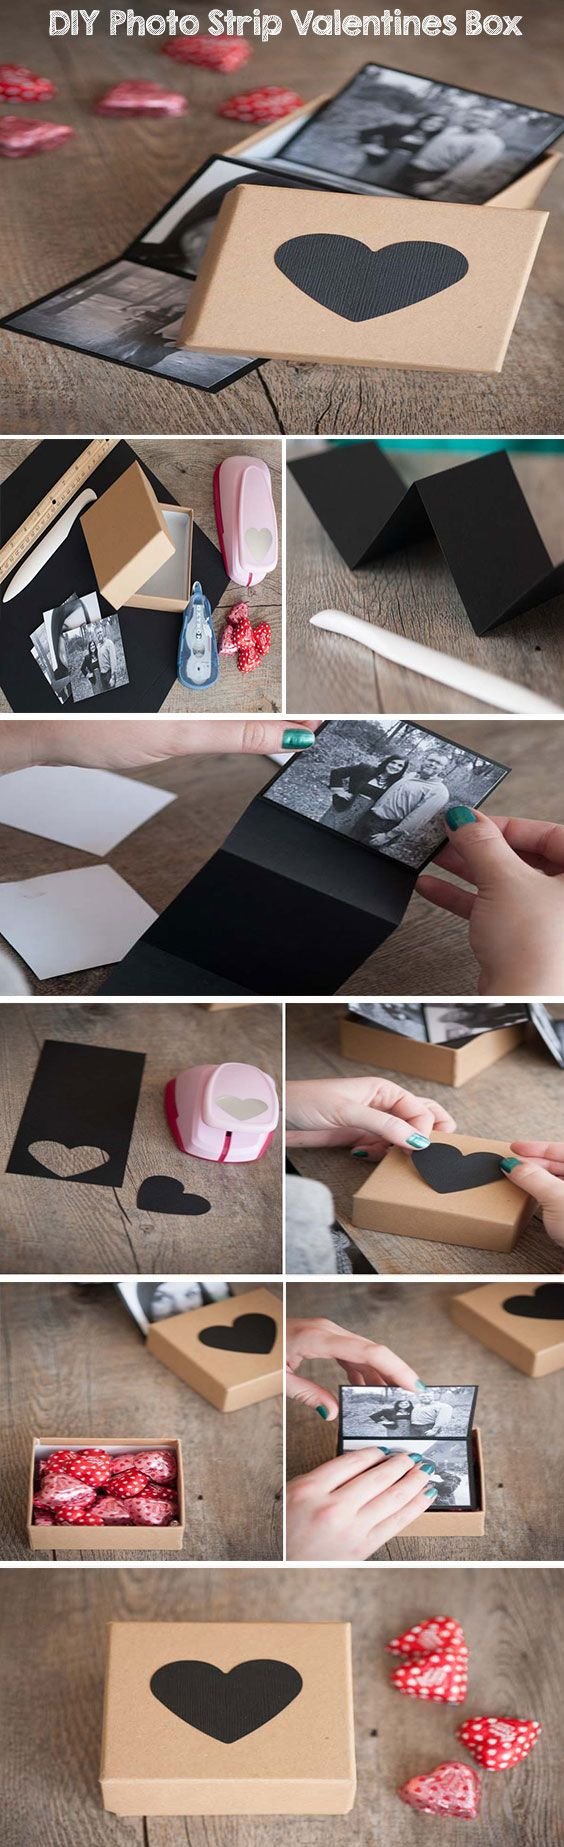 DIY Photo Strip Valentines Box For Your Boyfriend